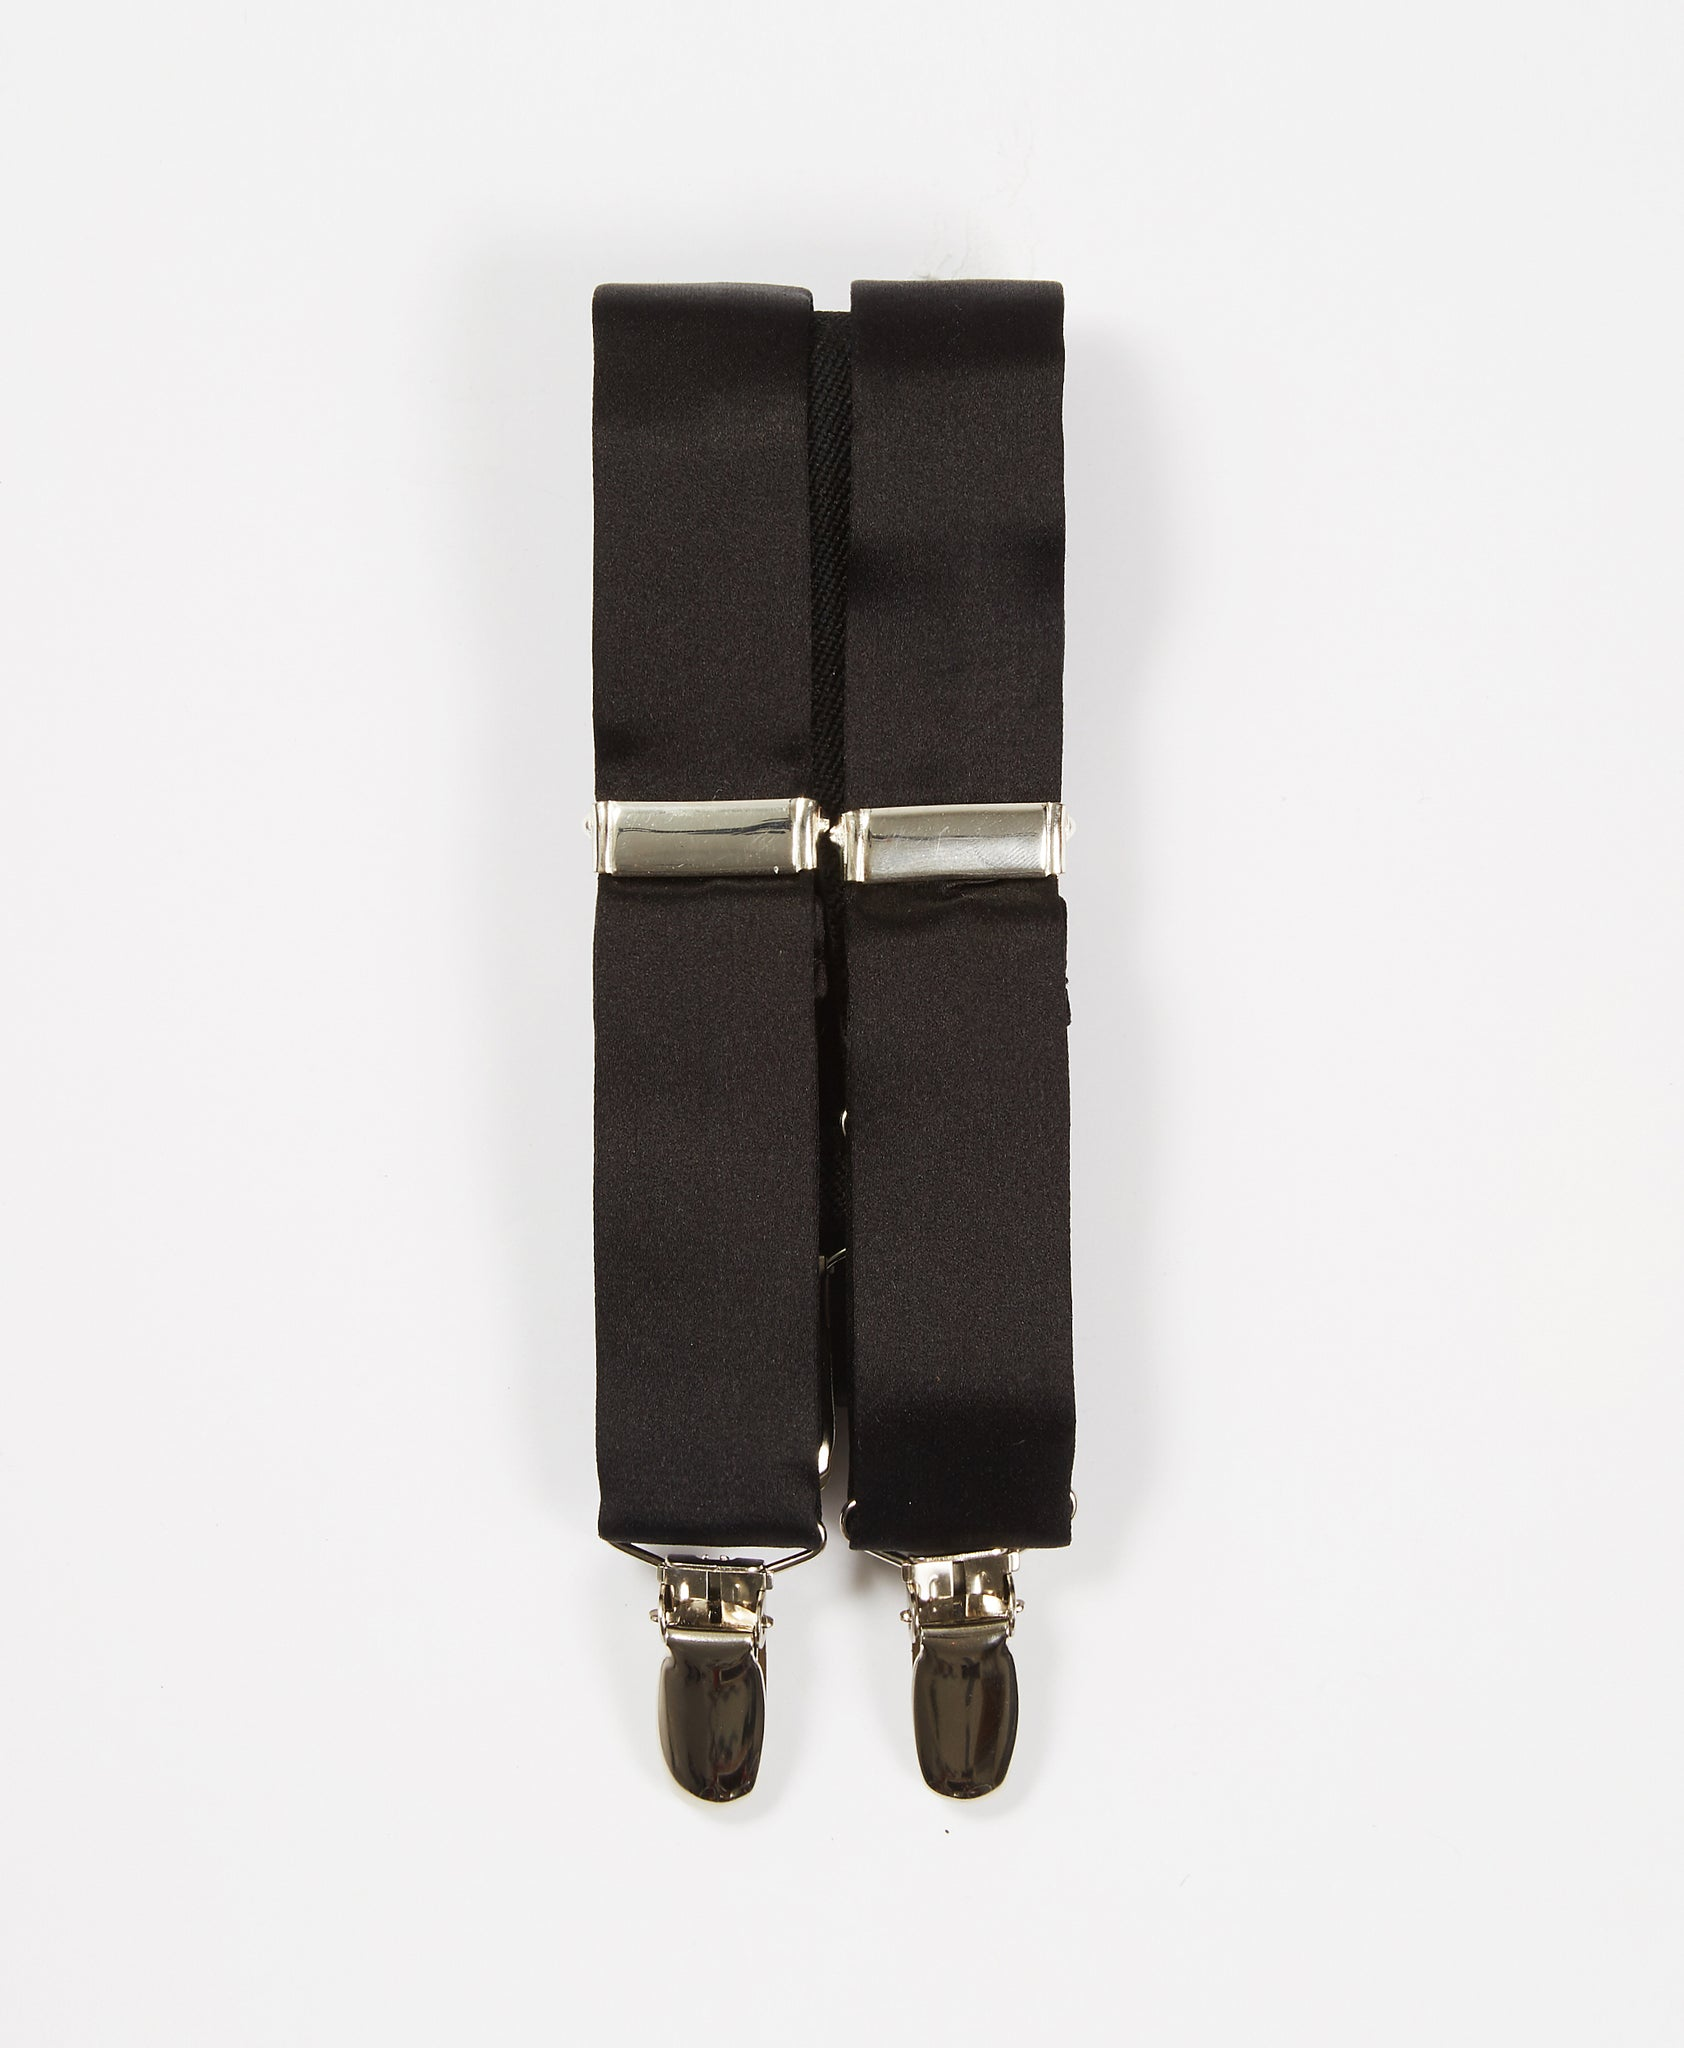 The Oscar Satin Suspenders